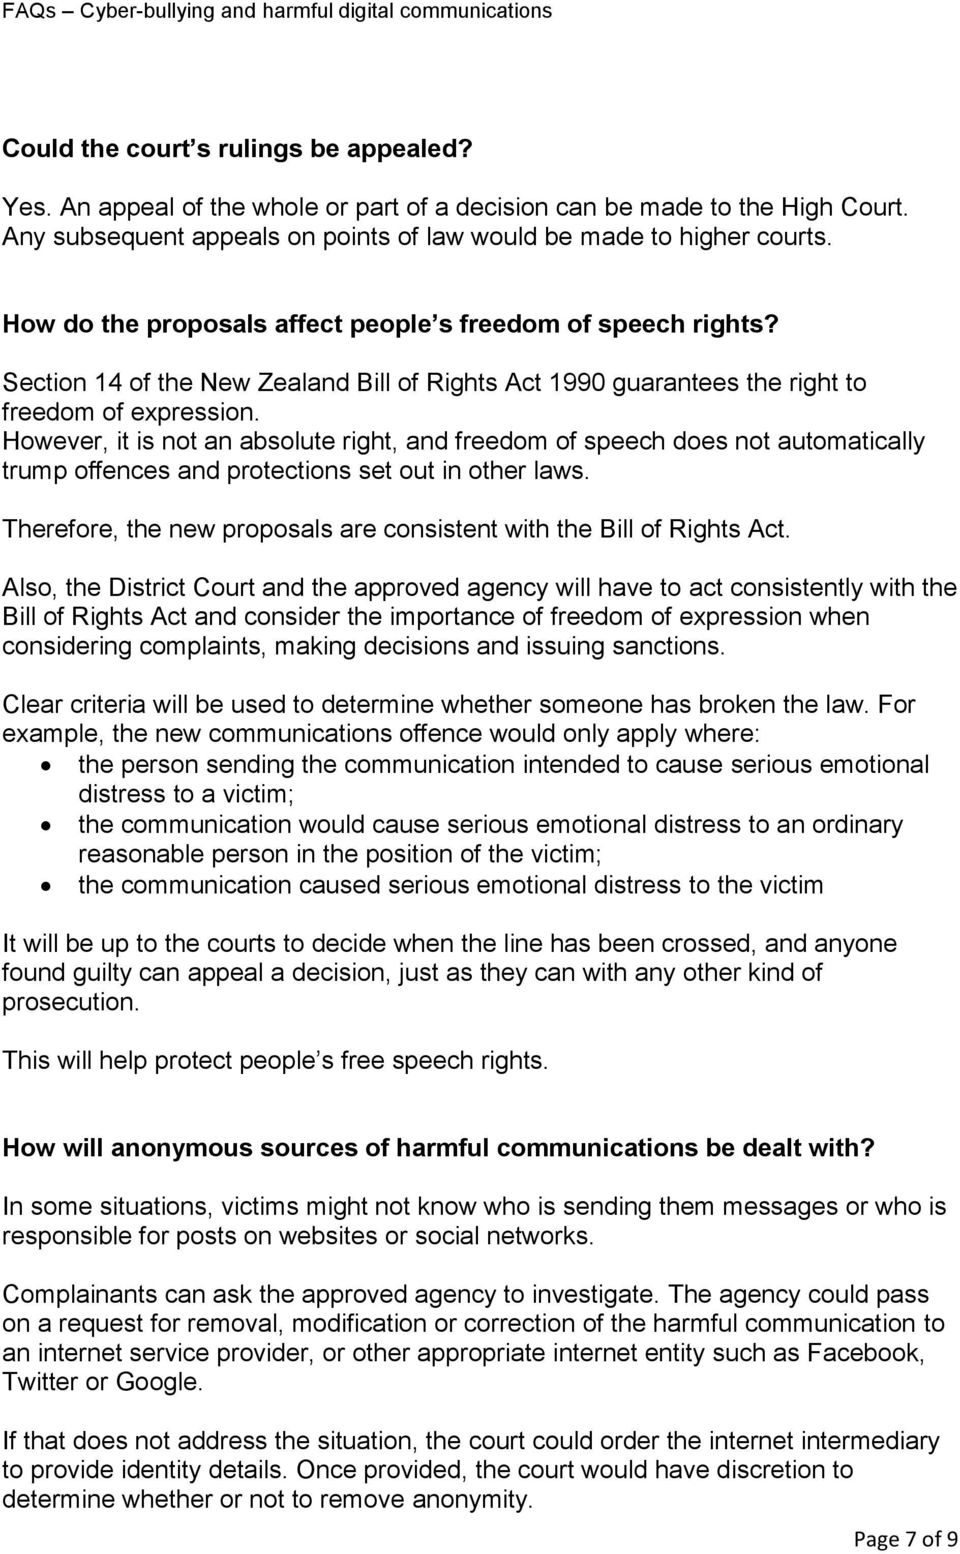 However, it is not an absolute right, and freedom of speech does not automatically trump offences and protections set out in other laws.